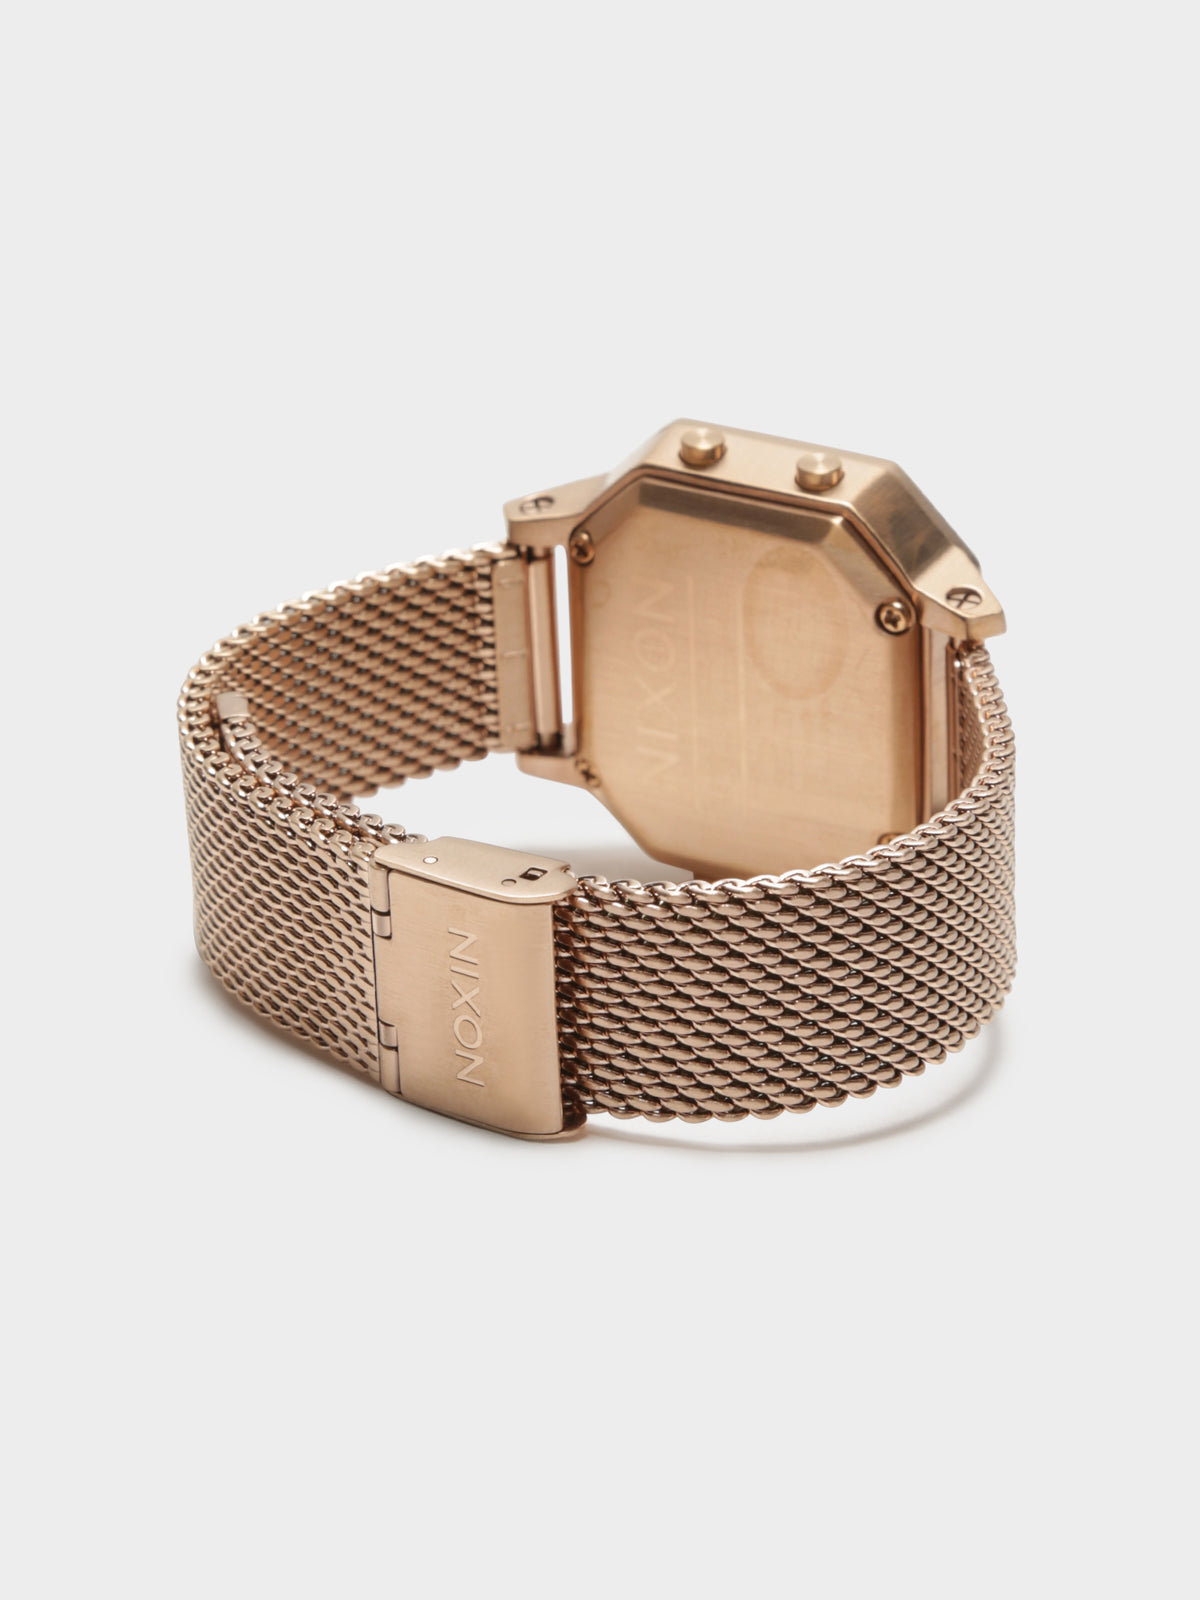 Siren SS Milanese Digital Watch in Rose Gold